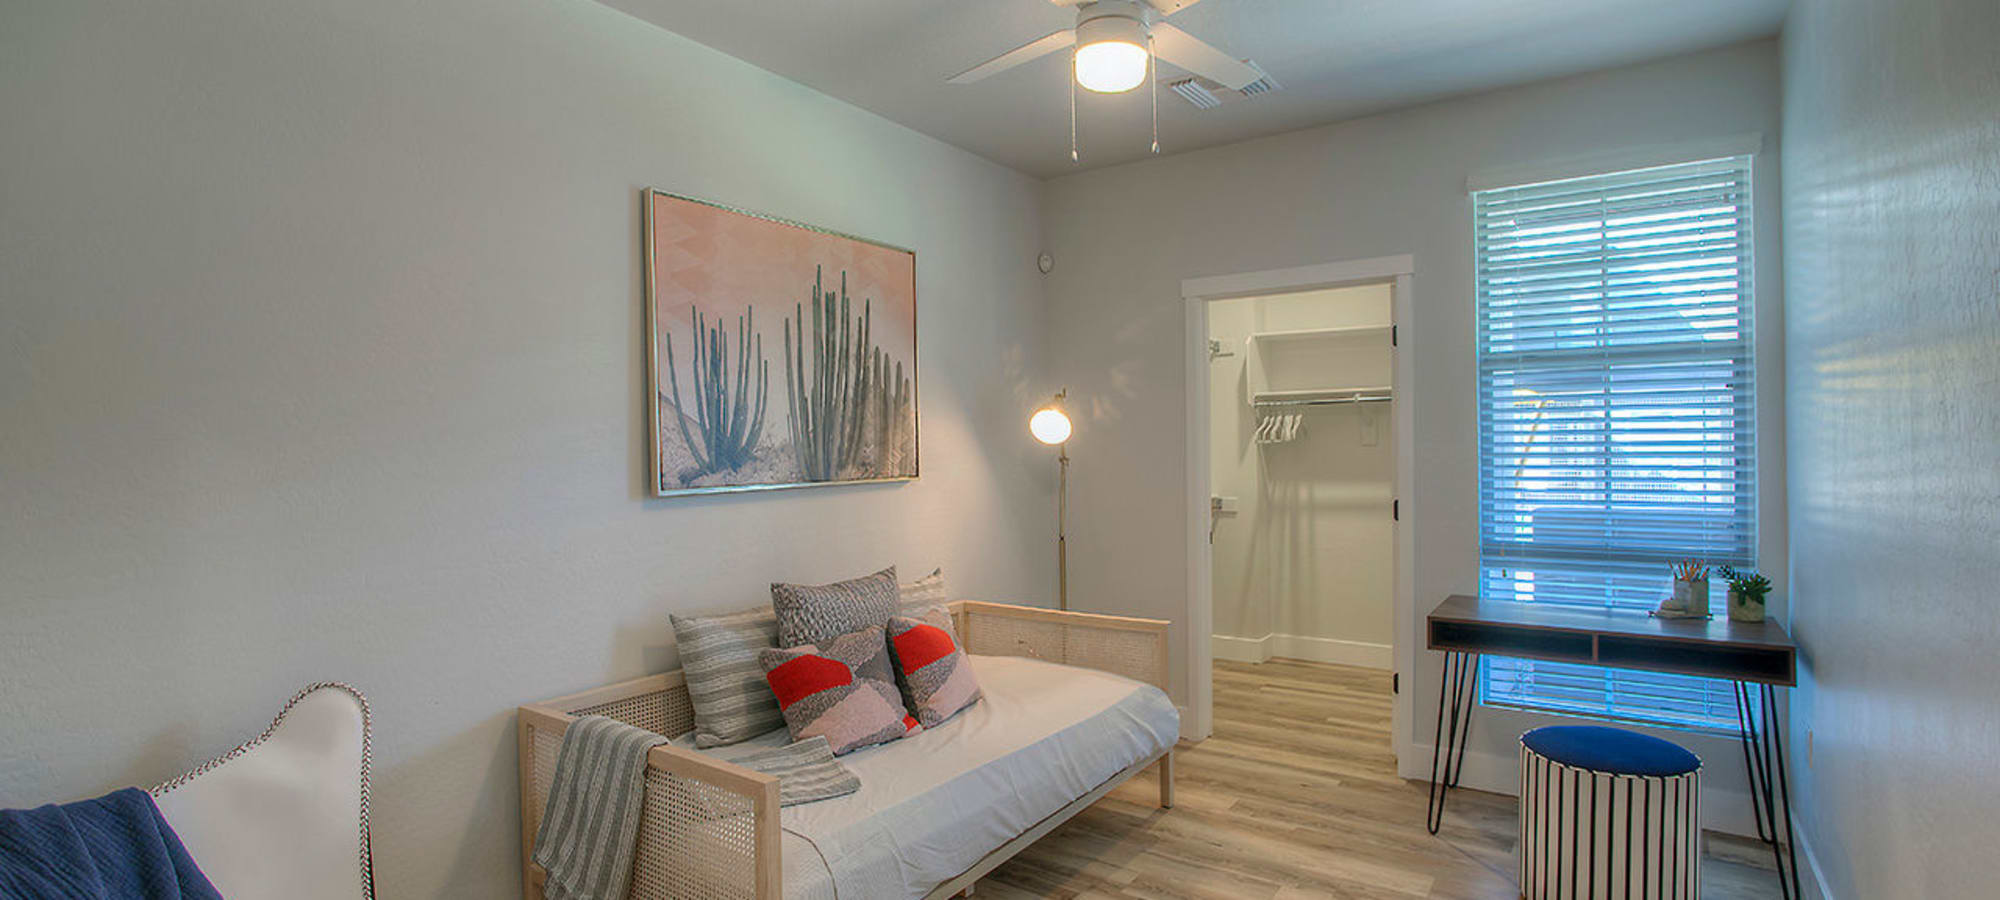 Guest bedroom with ceiling fan and walk-in closet in model home at District Lofts in Gilbert, Arizona